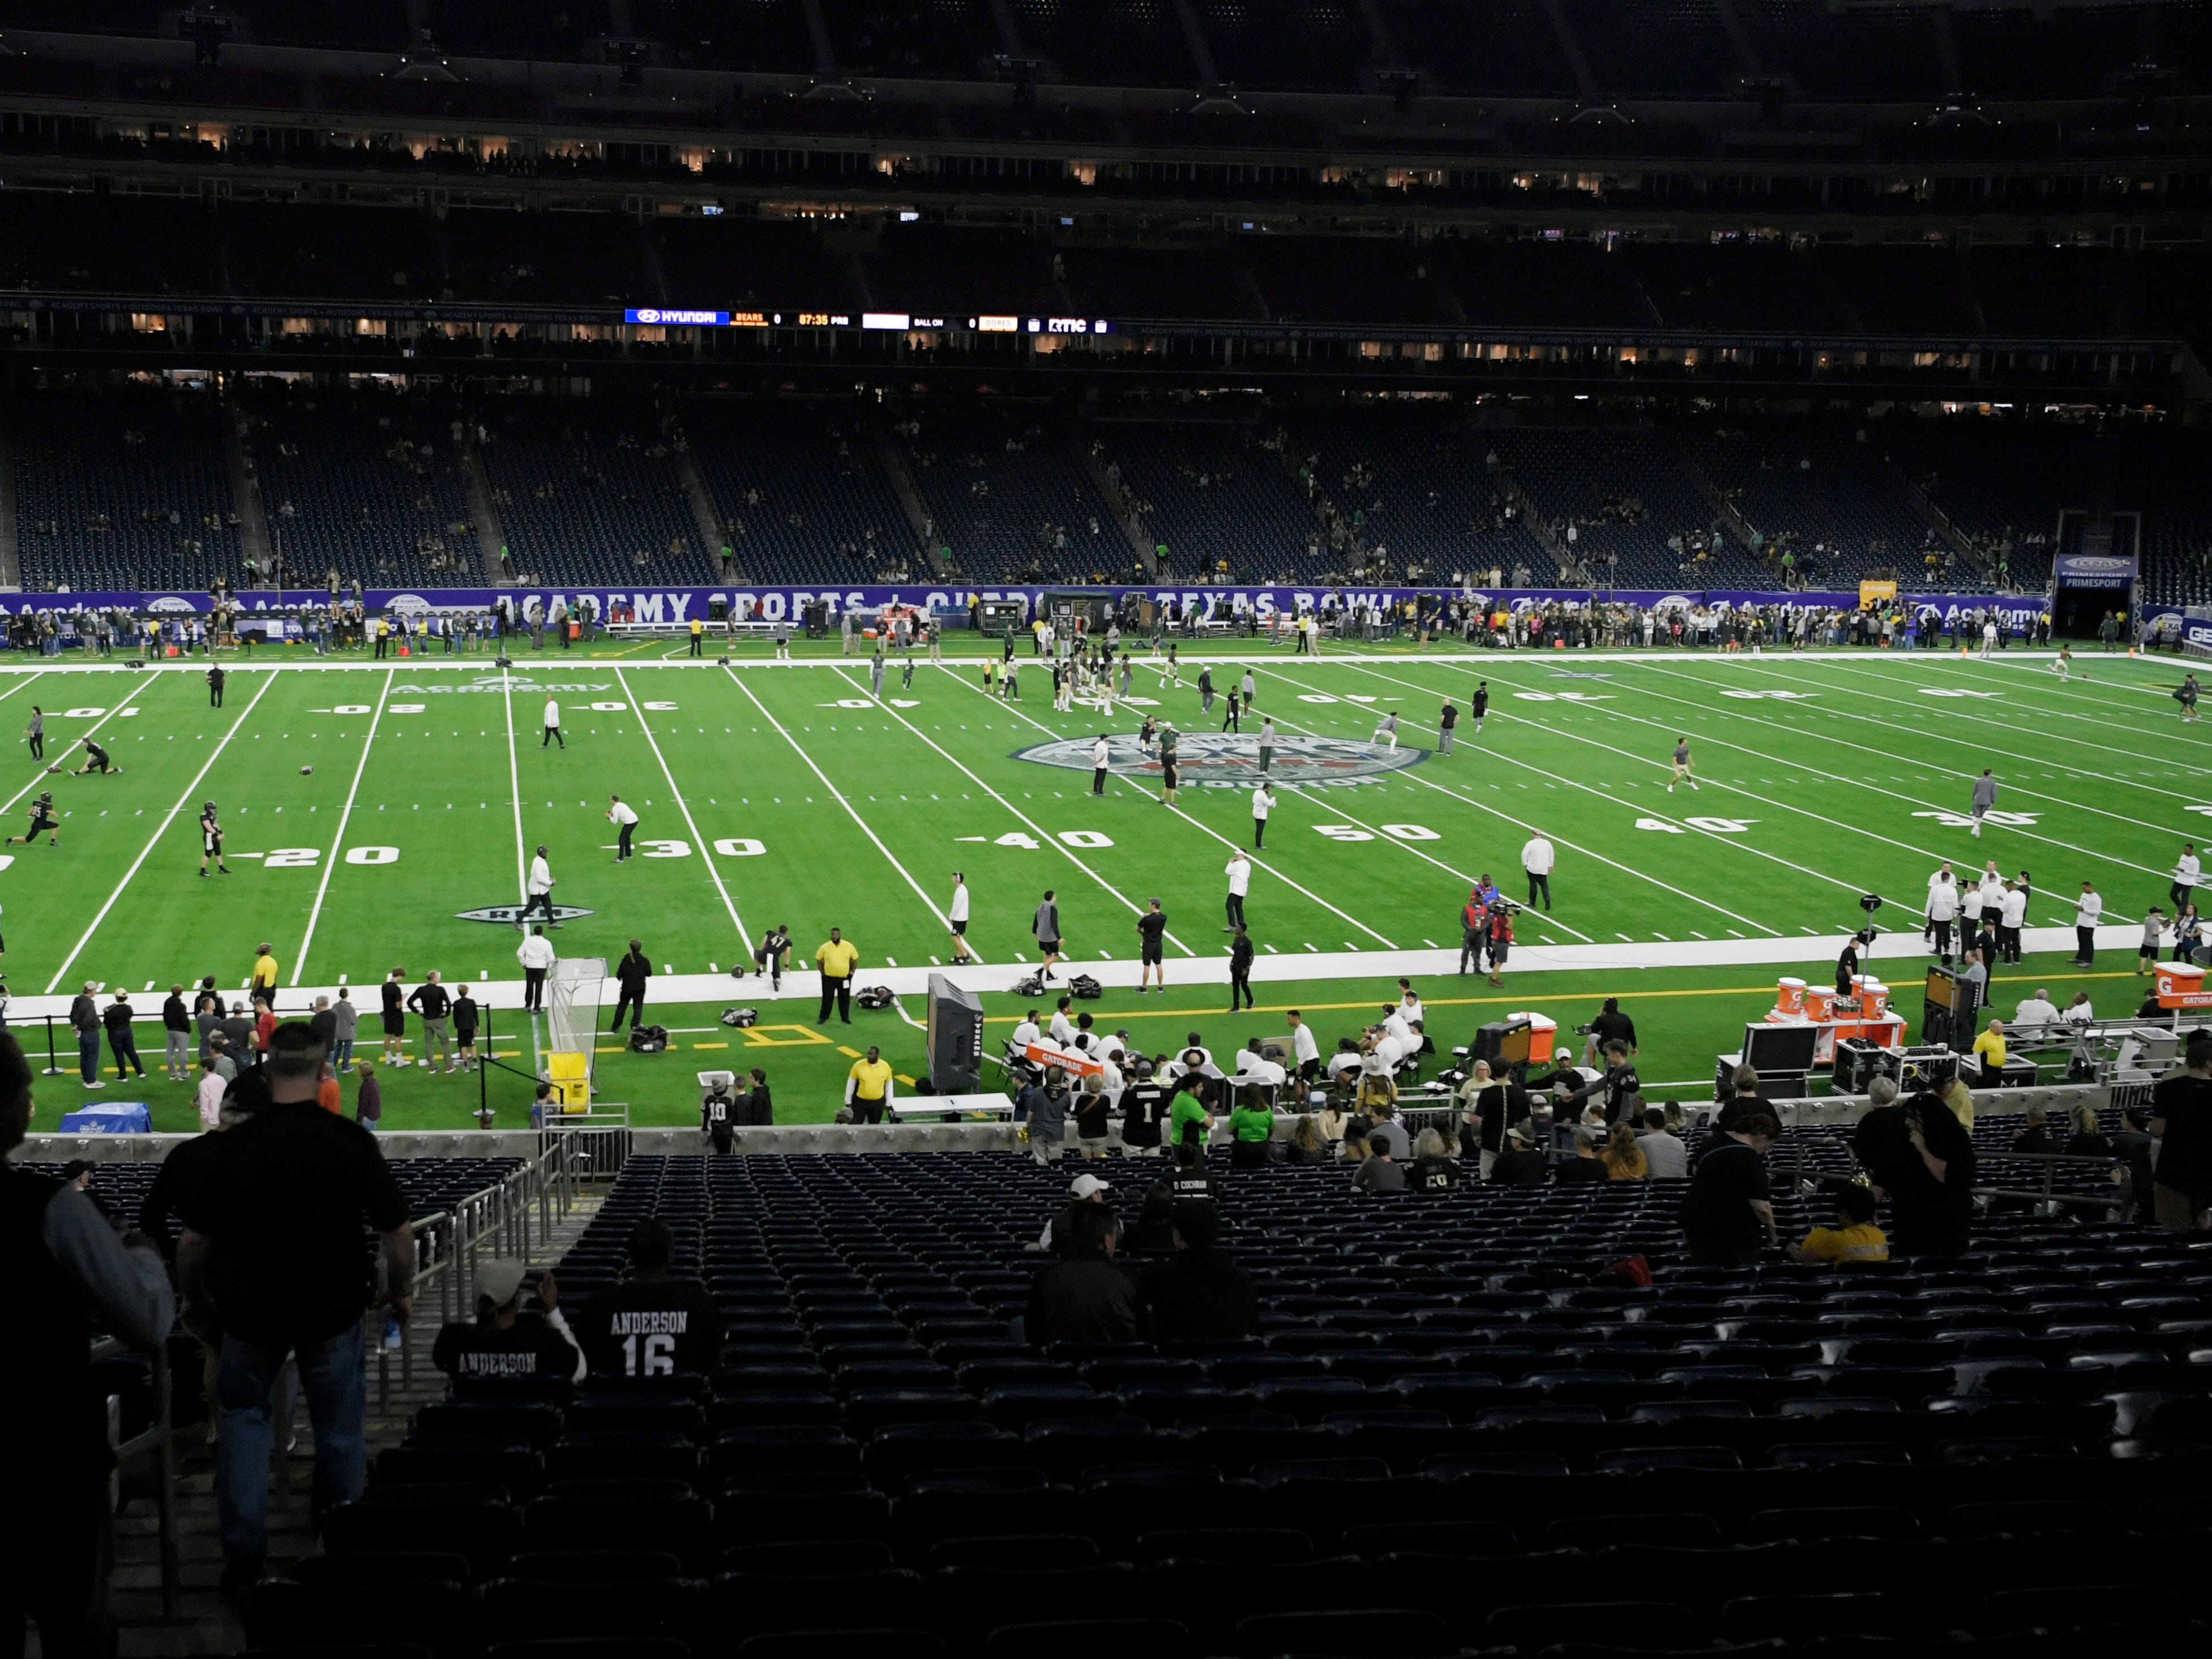 Vanderbilt warms up before the Academy Sports + Outdoors Texas Bowl at NRG Stadium in Houston on Thursday, Dec. 27, 2018.